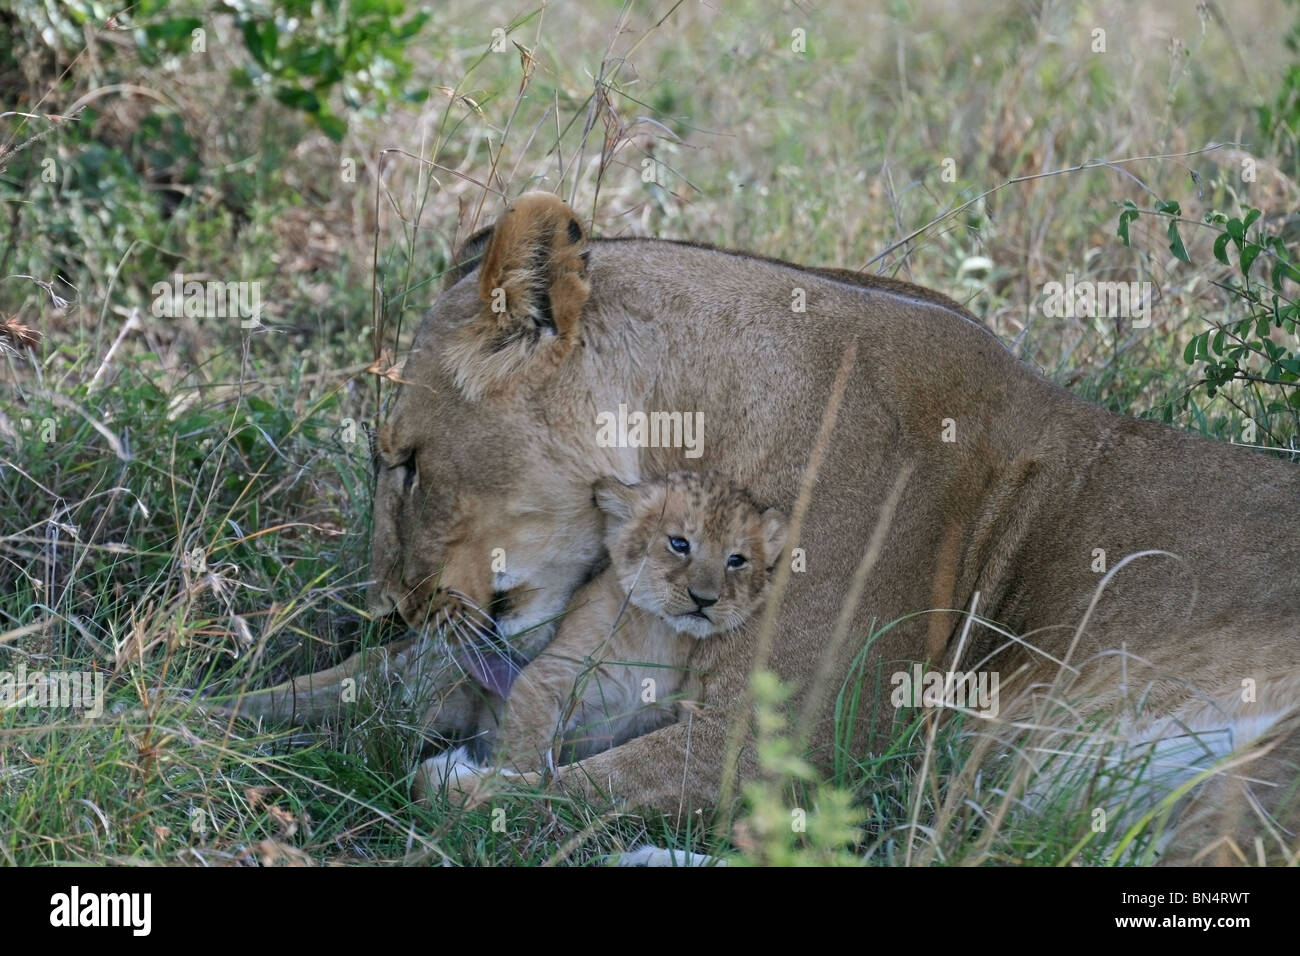 Lion Cub playing with mother in Masai Mara Game Reserve, Kenya, East Africa - Stock Image